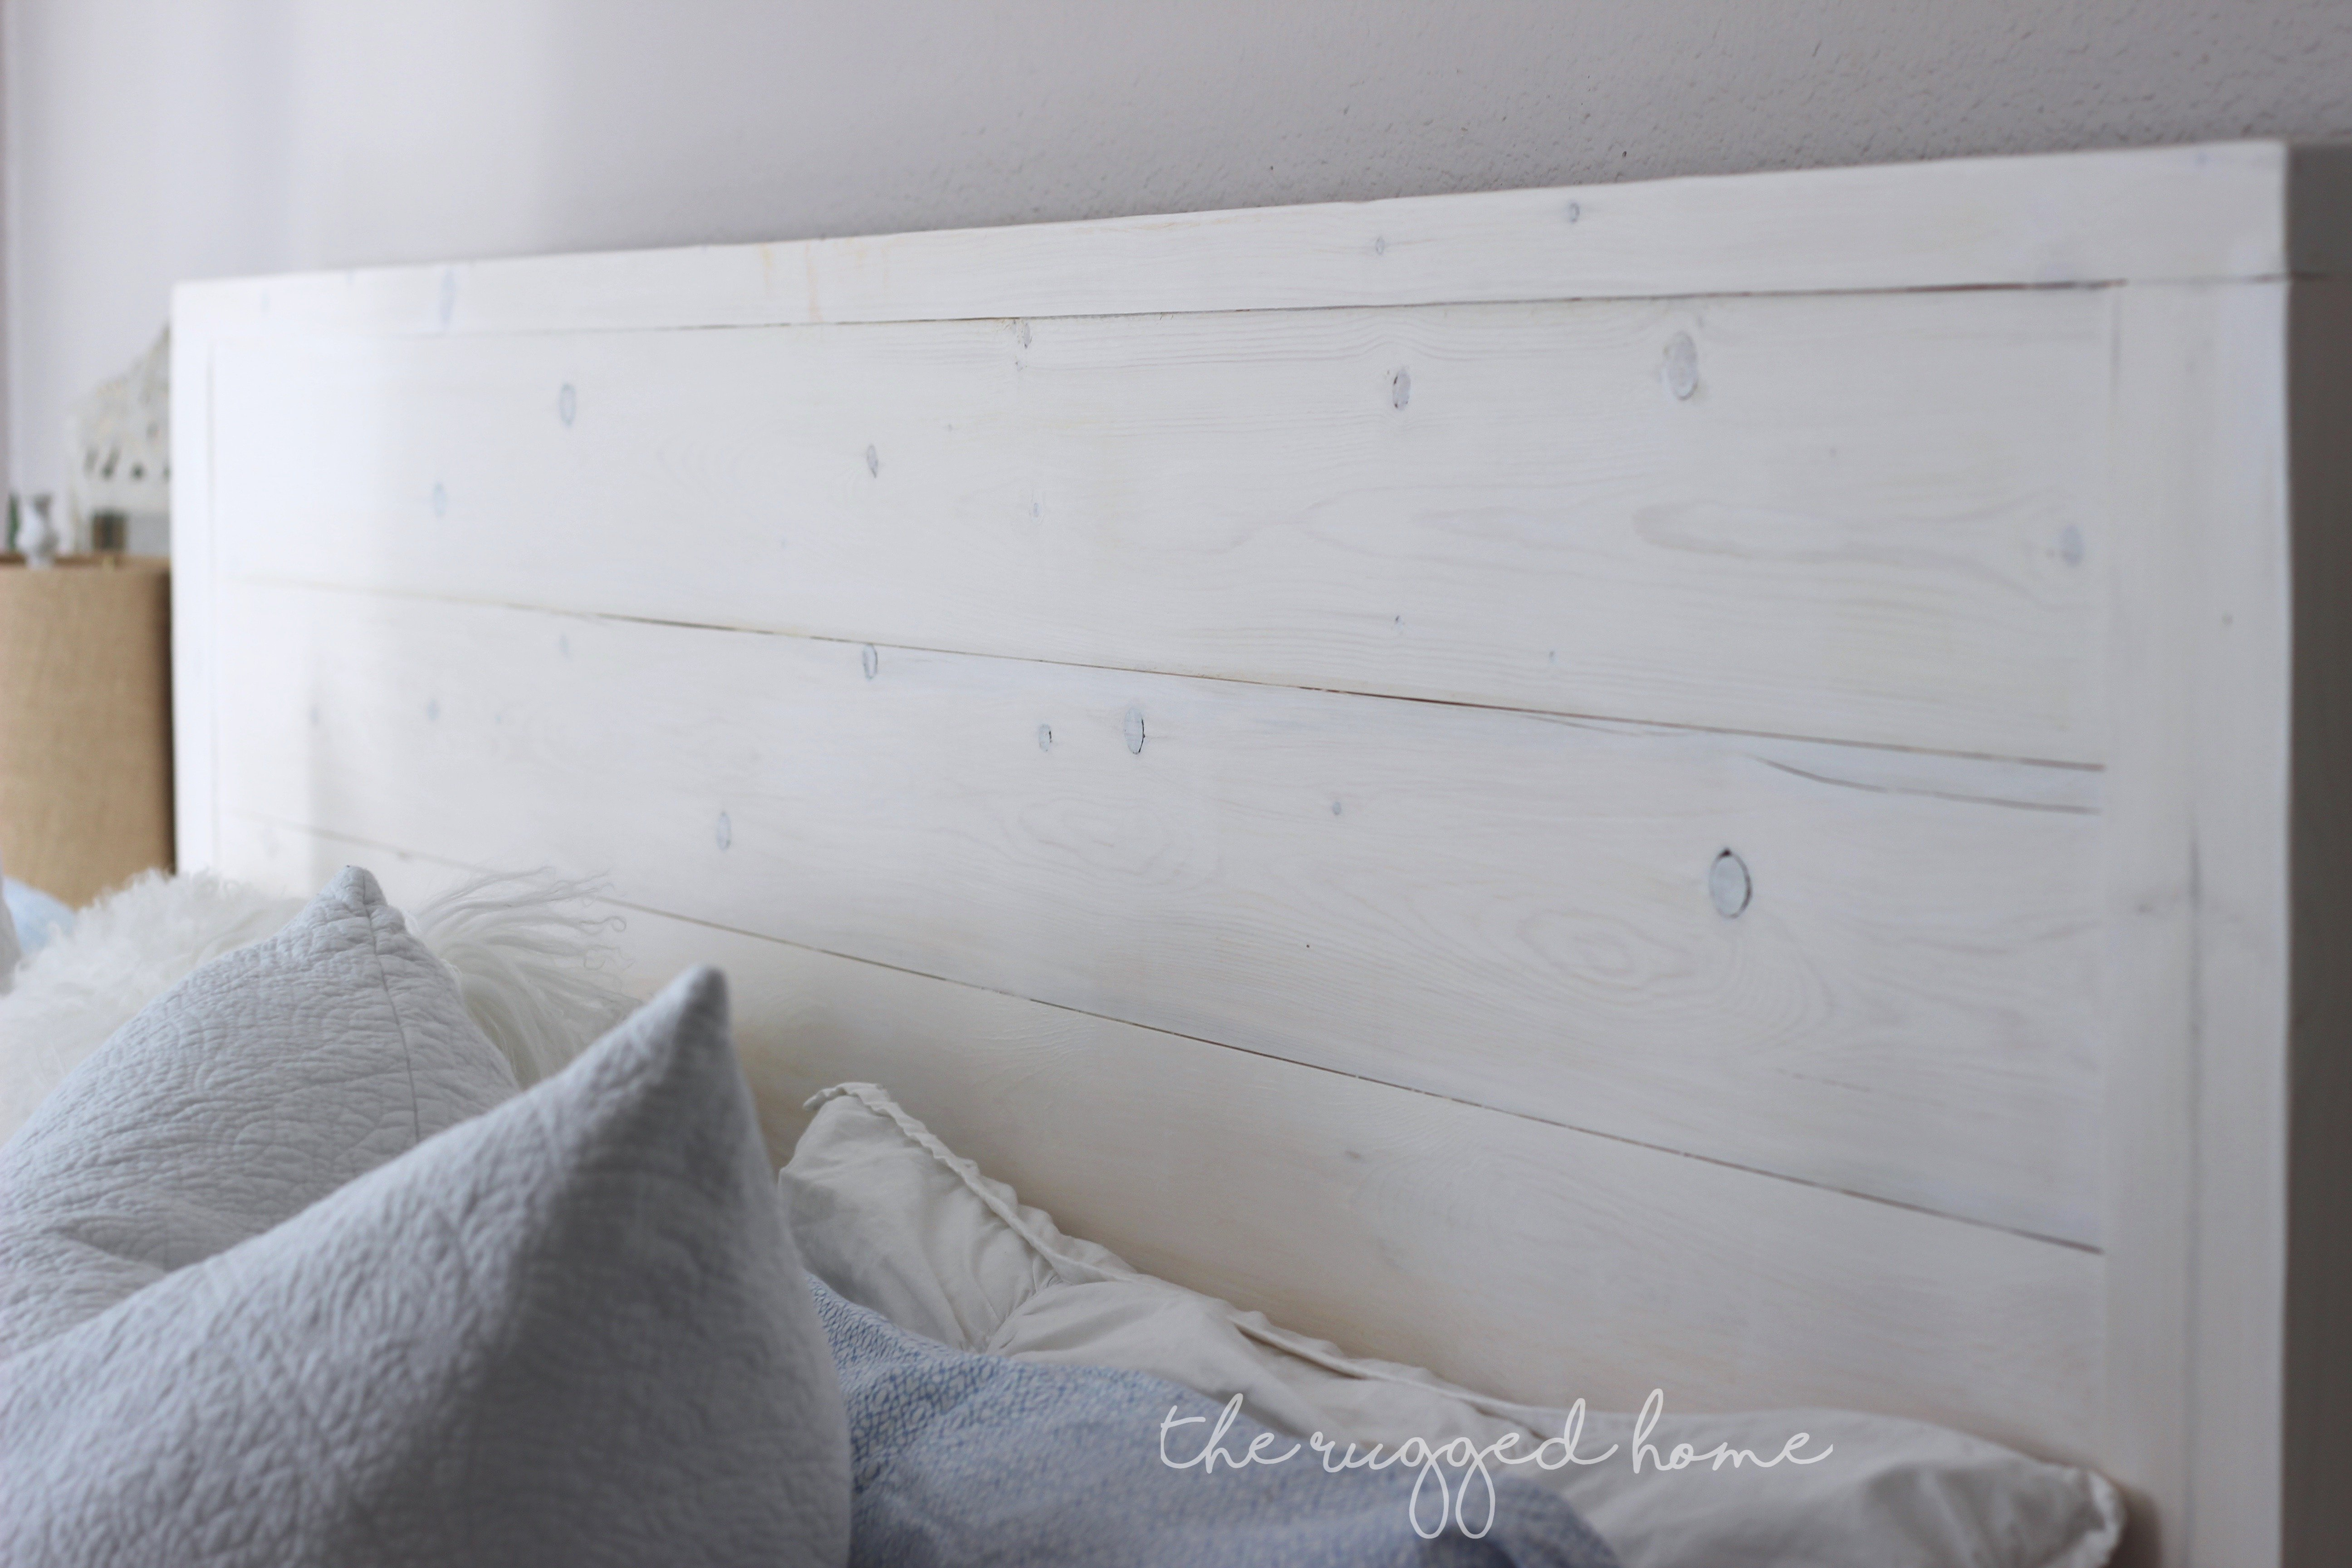 Our Rustic DIY Bed build In Under A Day, It's a Style From Overstock That We replicated